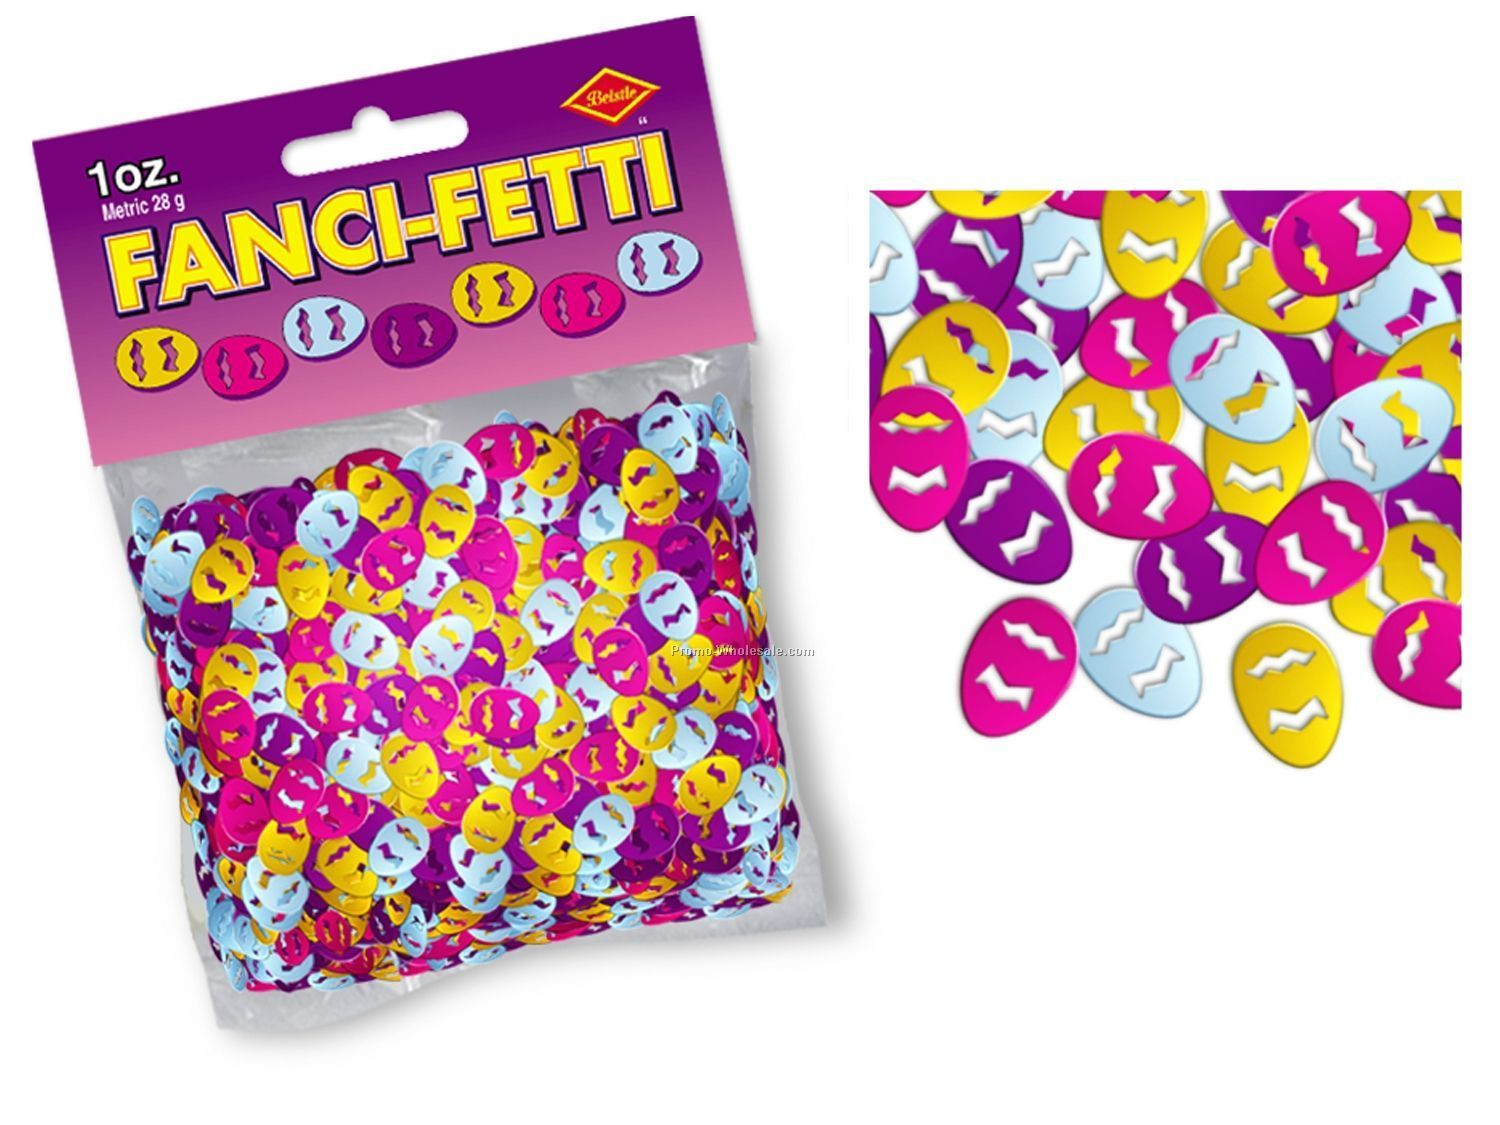 1 Oz. Fanci Fetti Easter Eggs